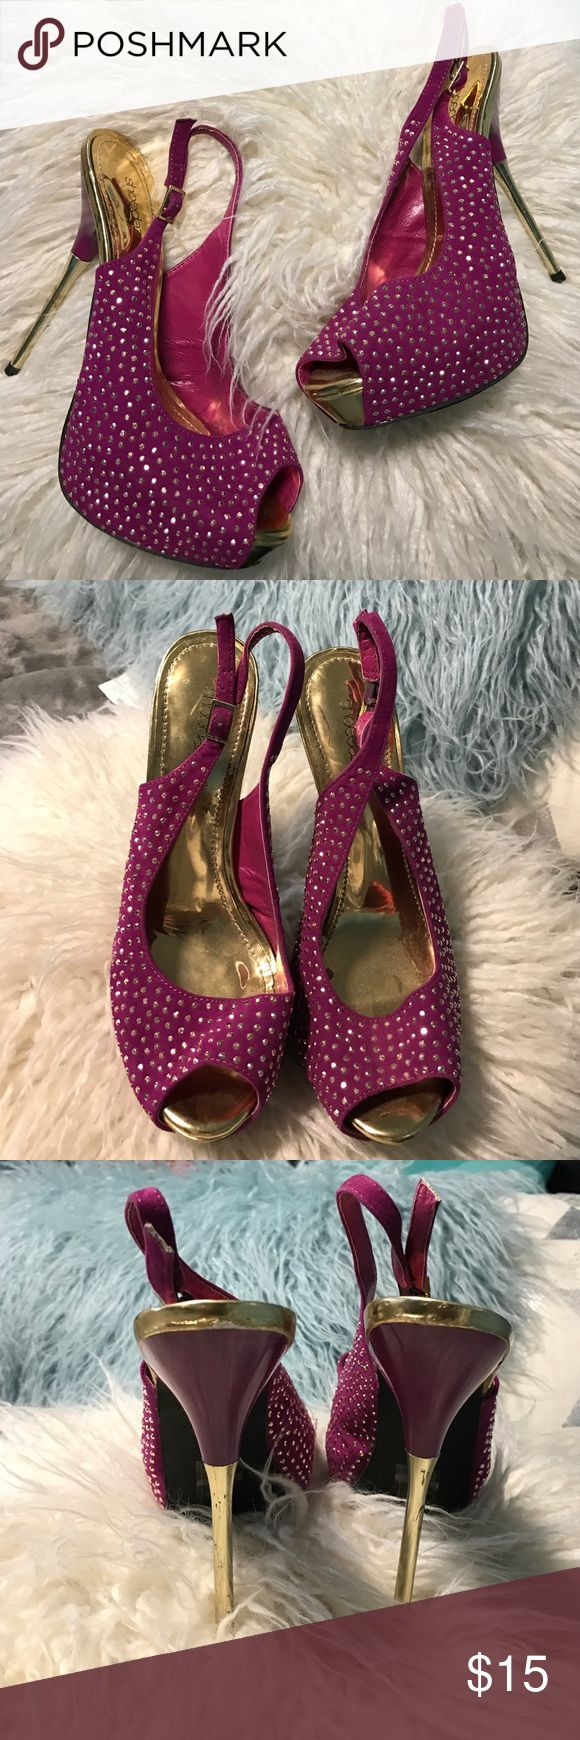 Shoe Dazzle purple pump with gold detail Really cute purple pumps with gold rhinestone details! From ShoeDazzle Shoe Dazzle Shoes Heels